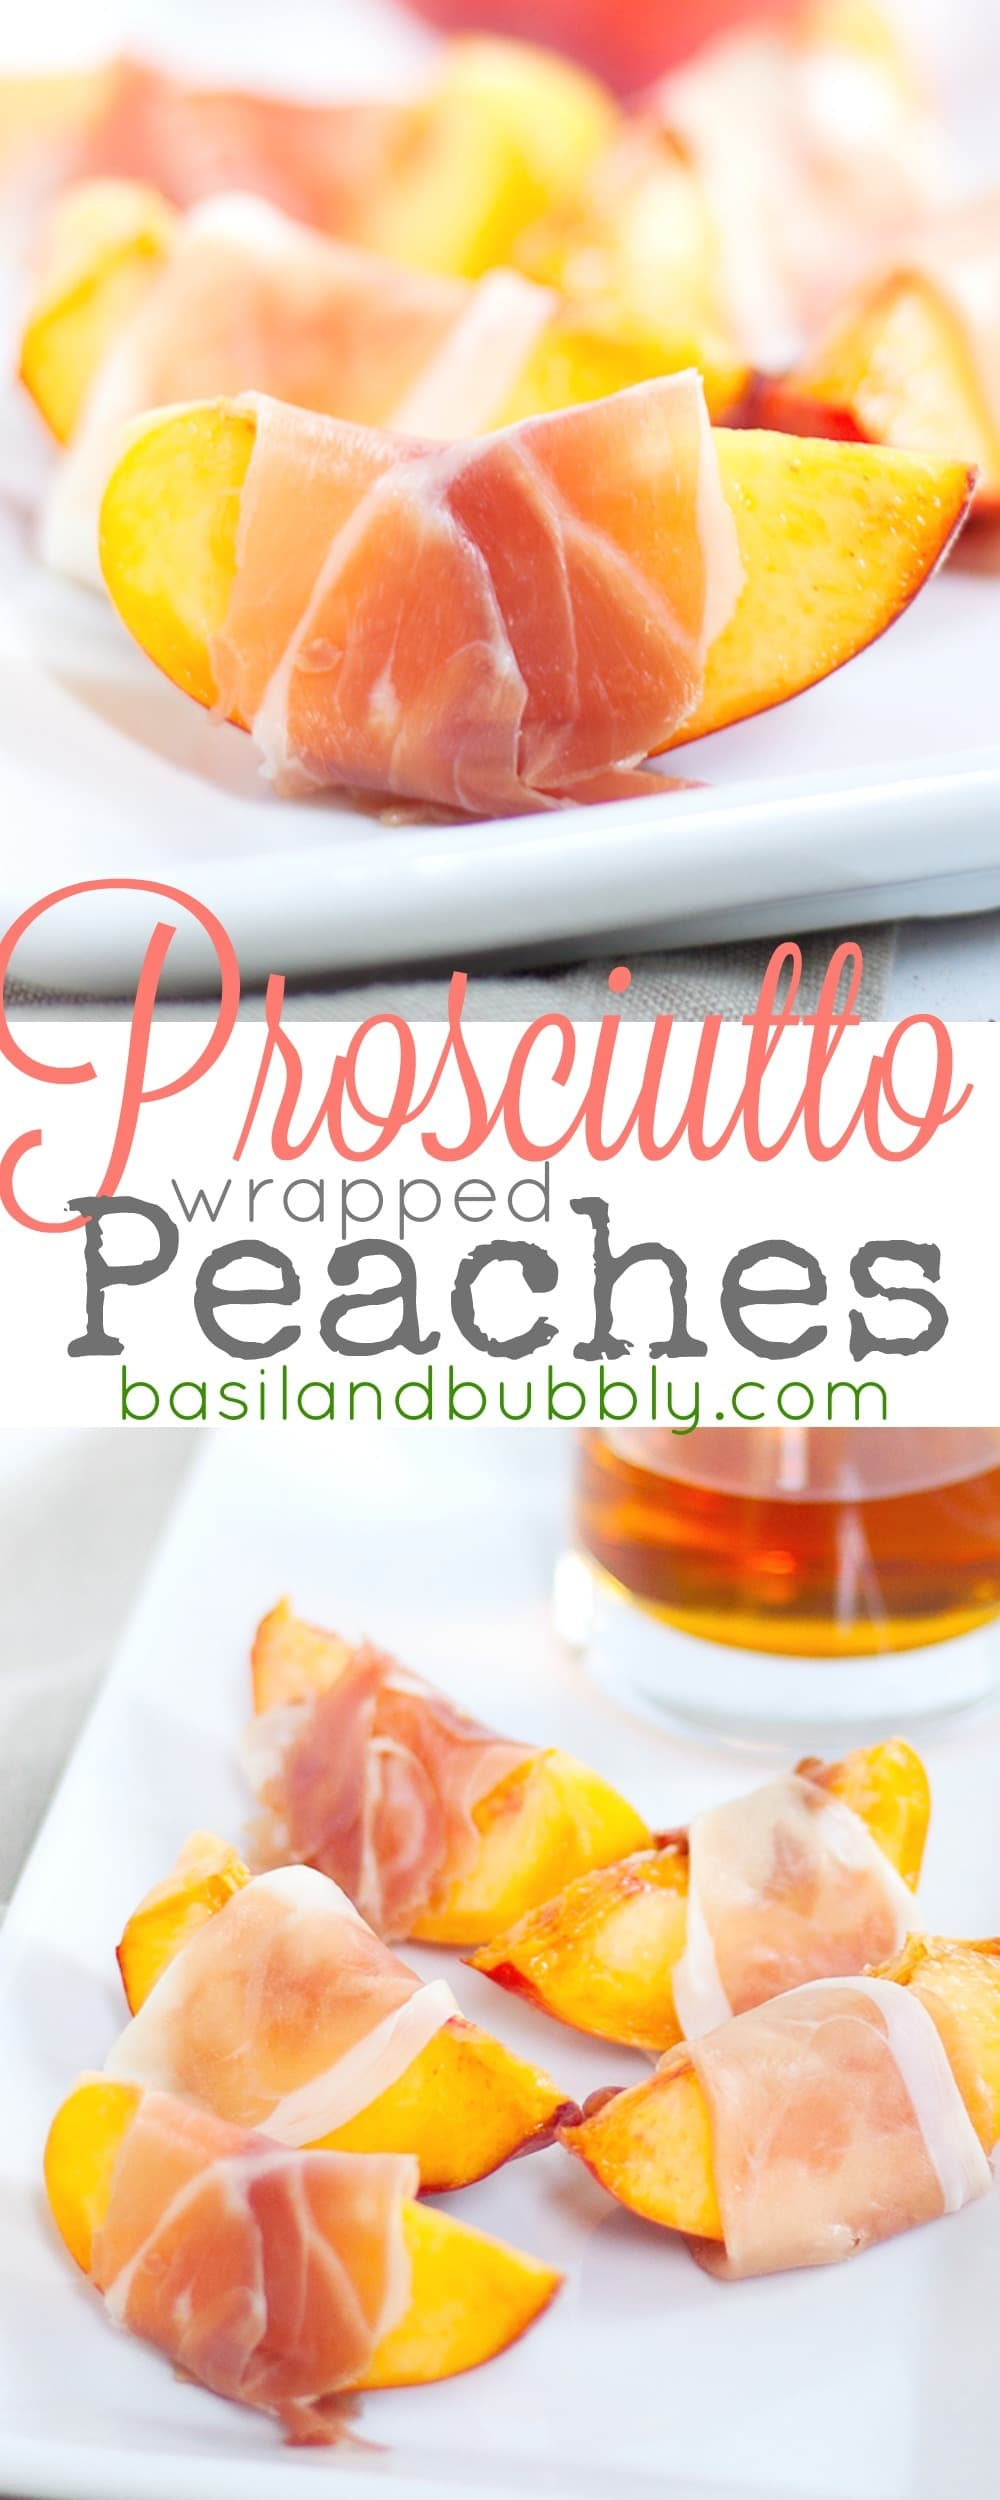 Proscuitto Wrapped Peaches -- a two ingredient no-cook easy appetizer anyone can make